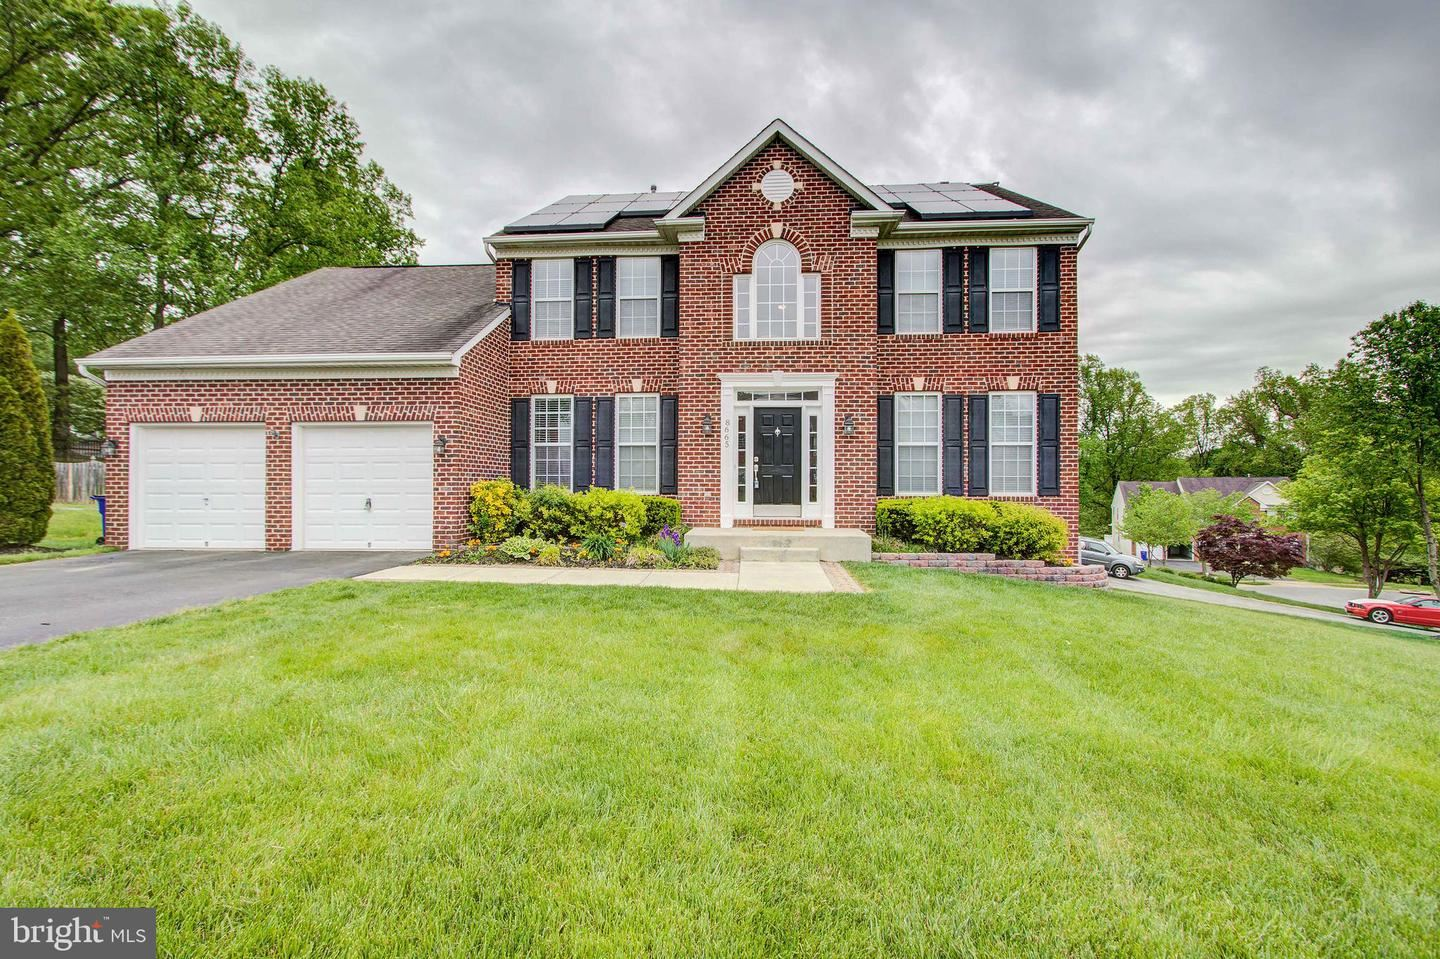 8665 TOWER DR, Laurel, MD 20723 - MLS#: MDHW293248